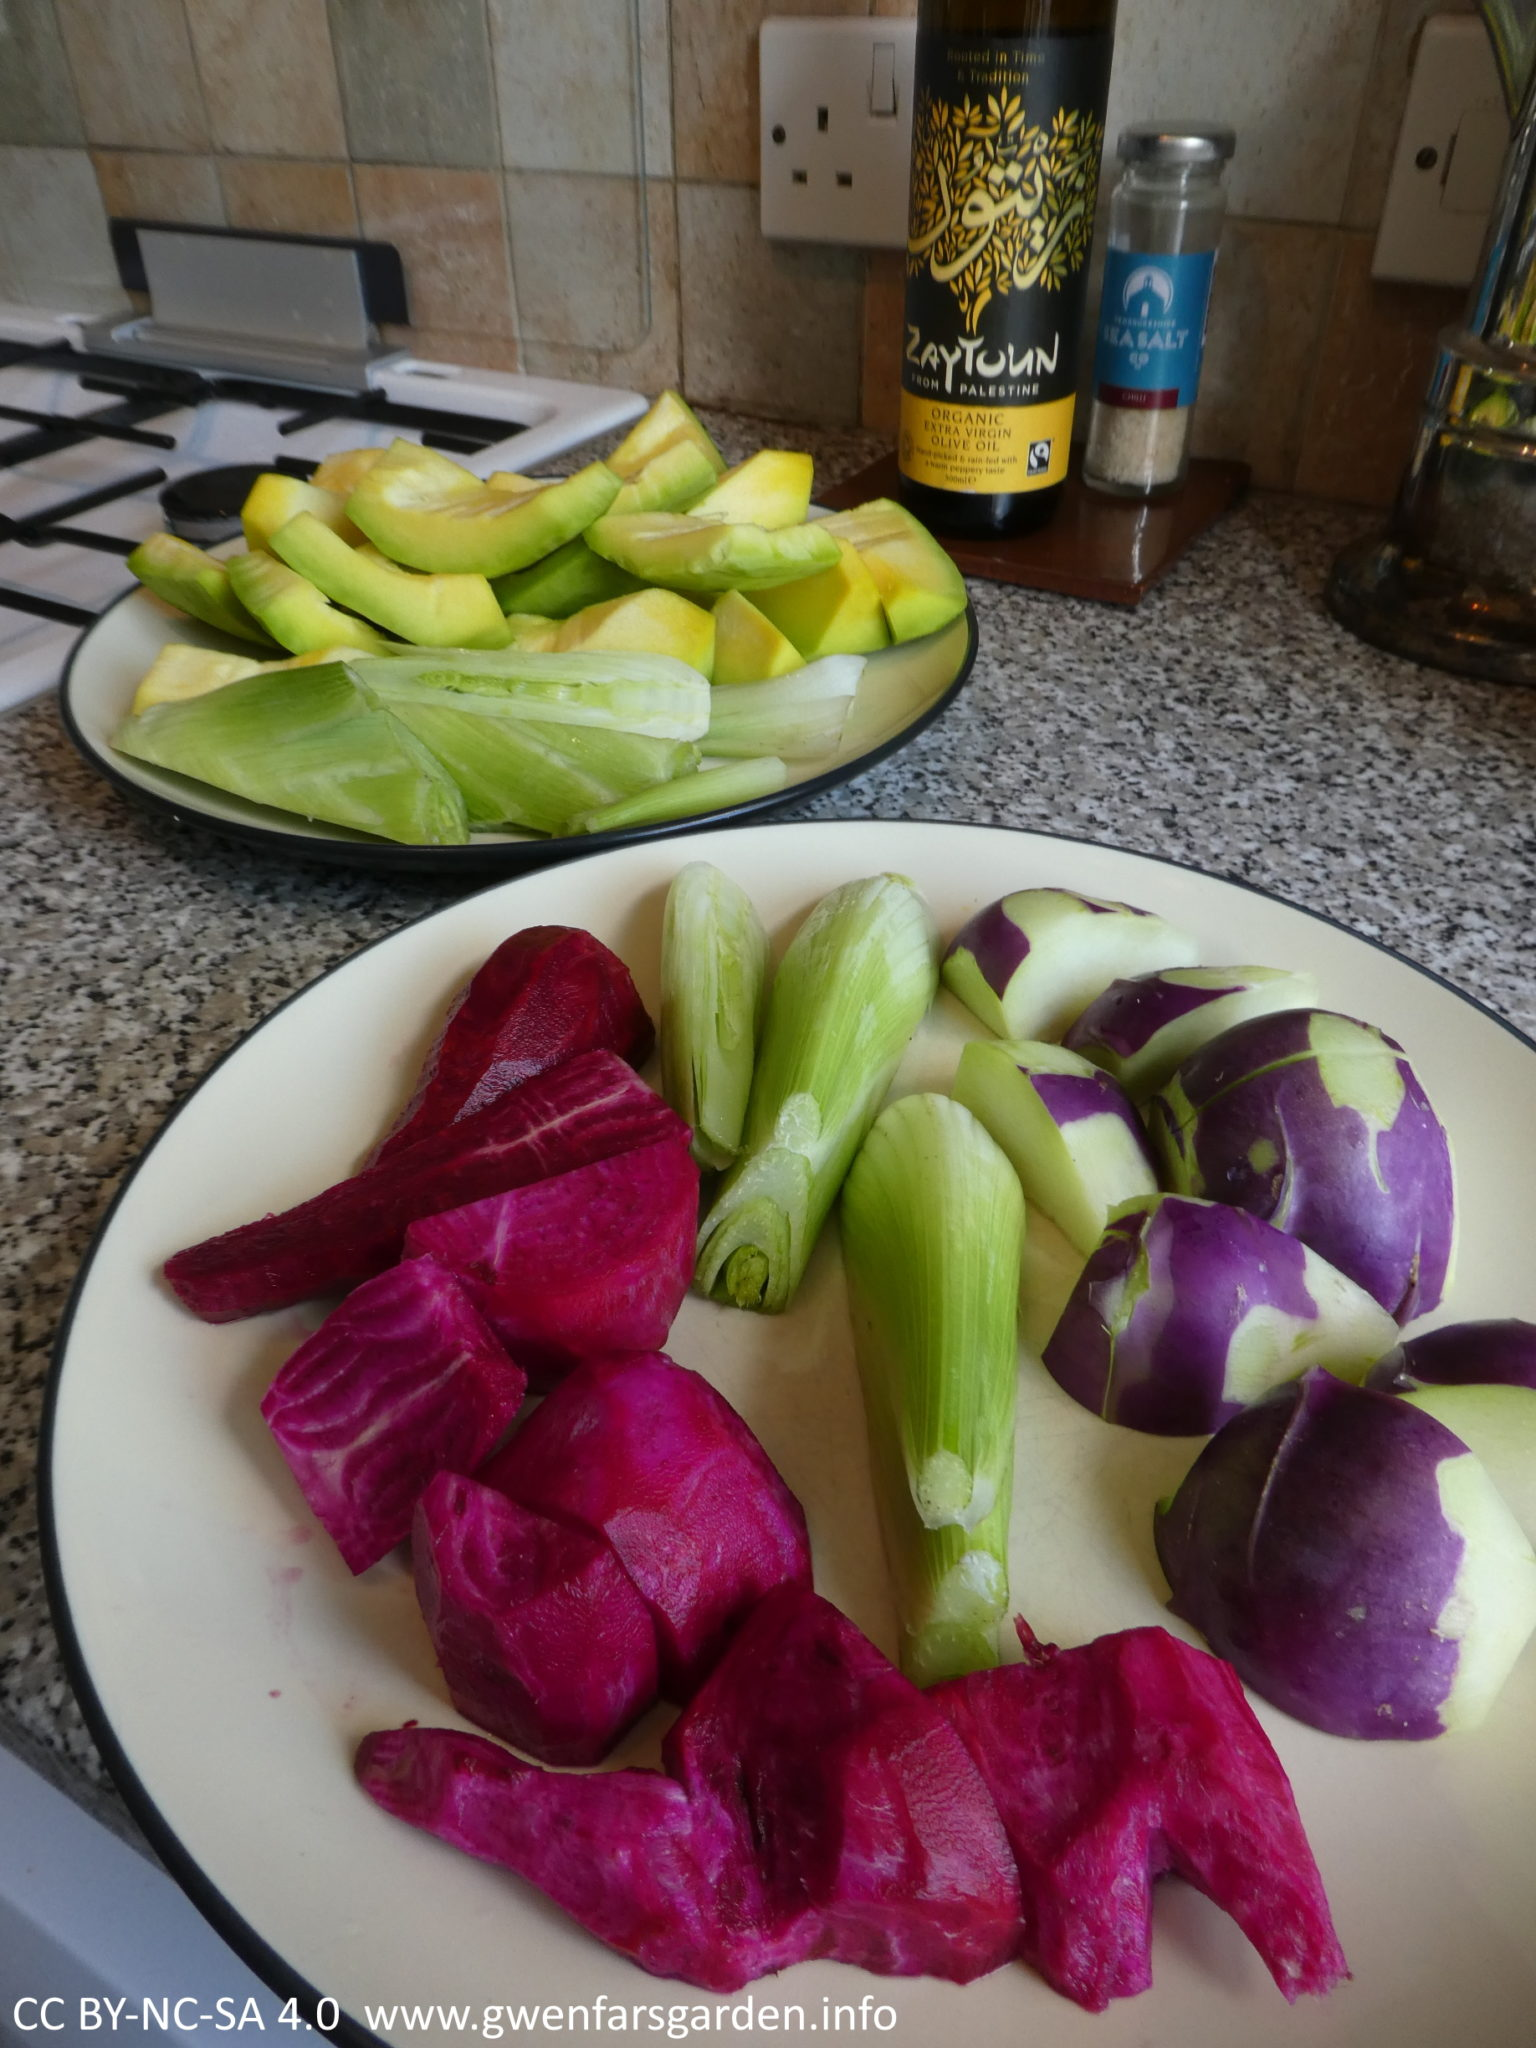 Two plates of veggies peeled and cut up, from the garden. The top one has the small yellow Sibley squash cut up, plus some fennel bulbs. The bottom one has purple kohlrabi and red-magenta beetroot.